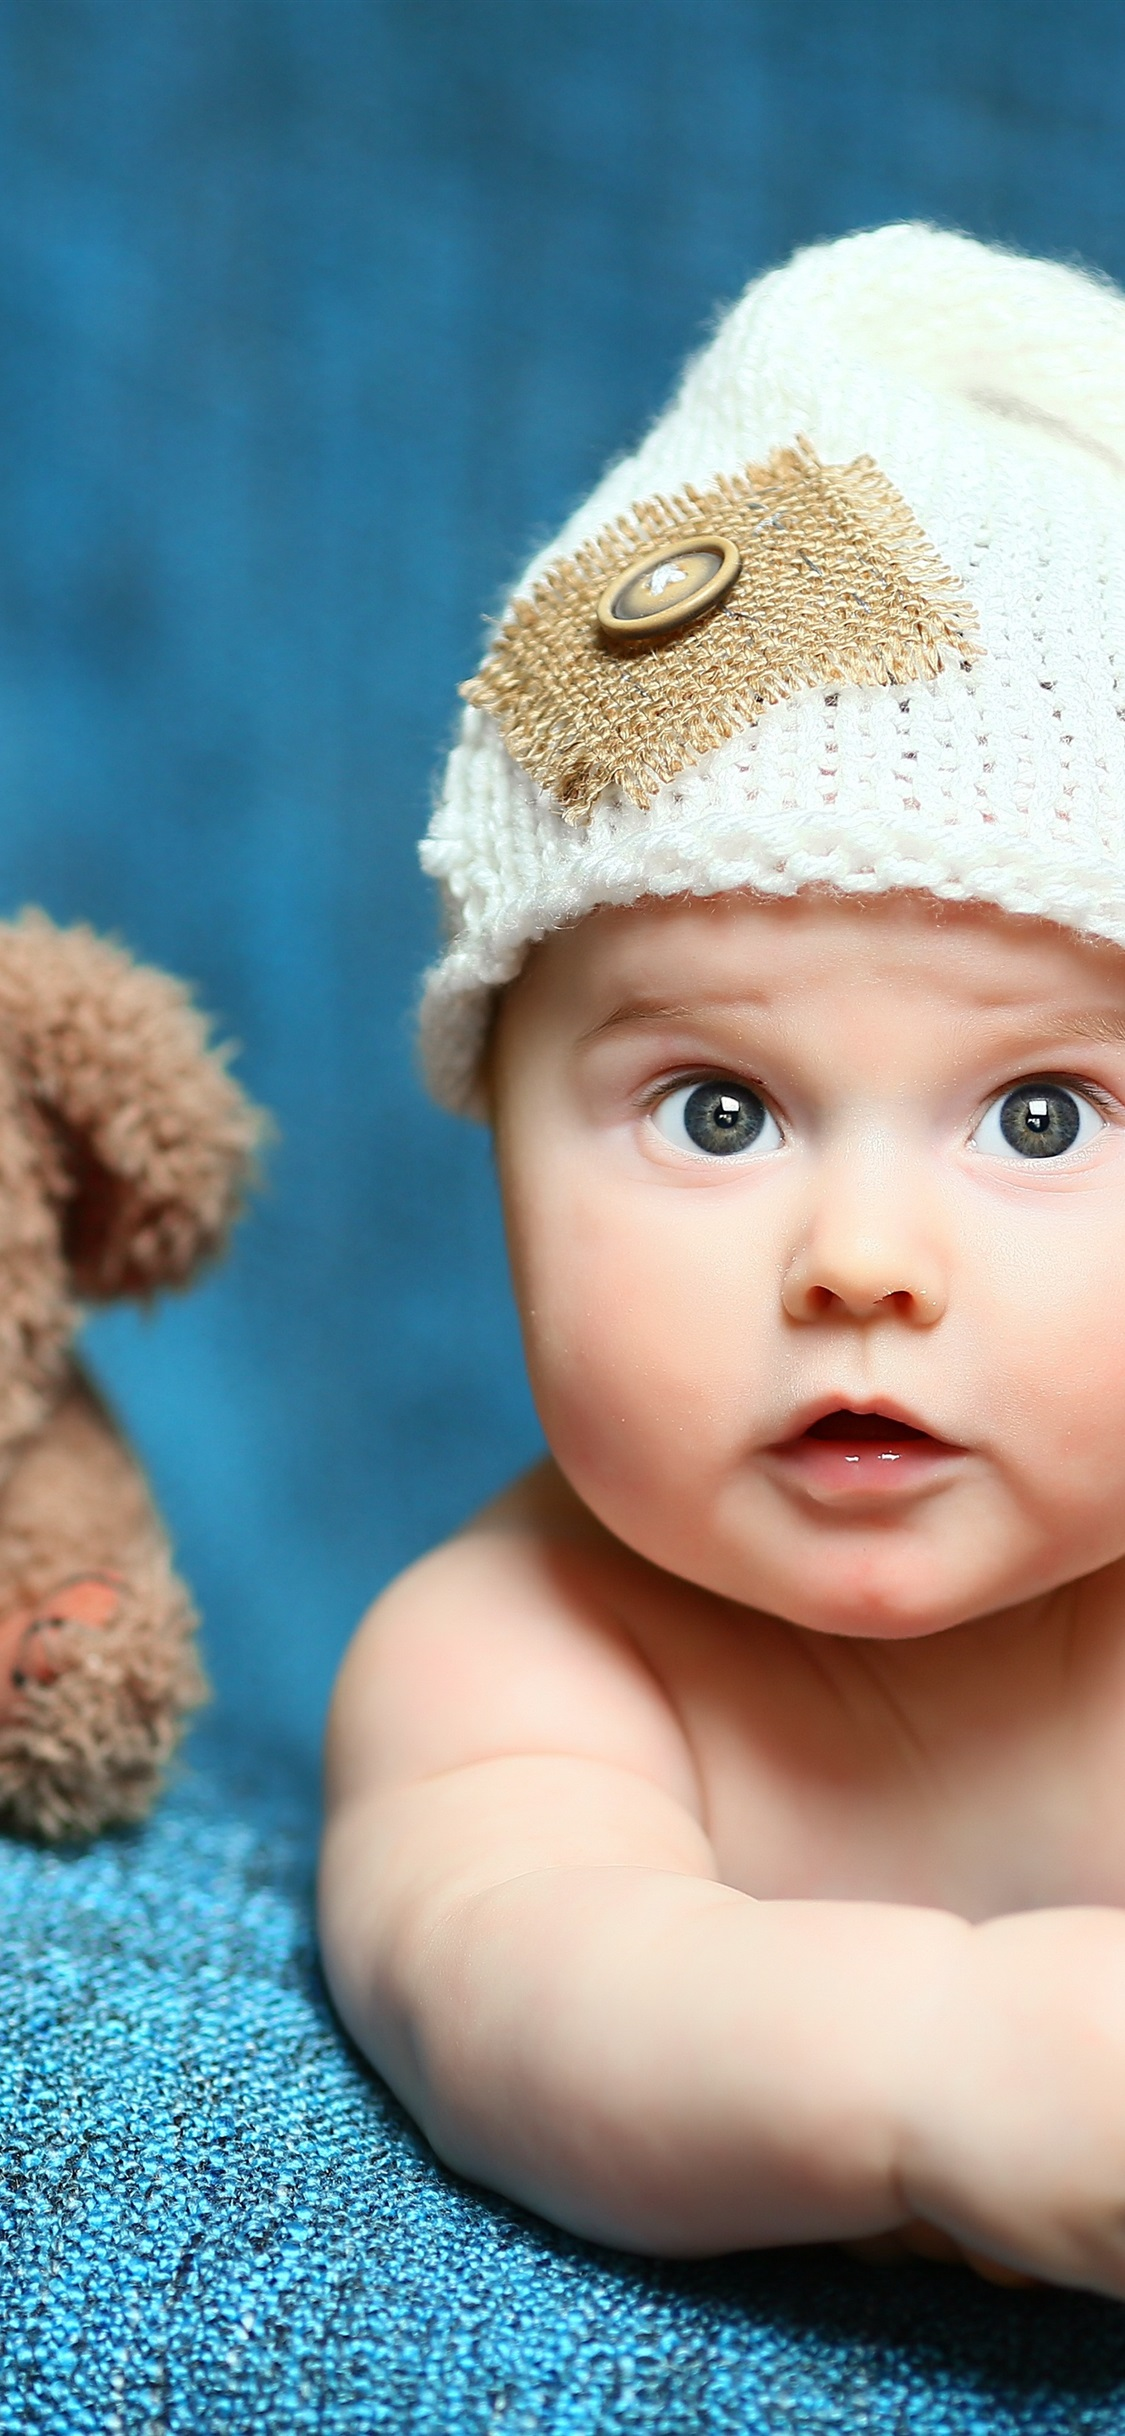 Cute Baby And Toy Bear 1125x2436 Iphone 11 Pro Xs X Wallpaper Background Picture Image